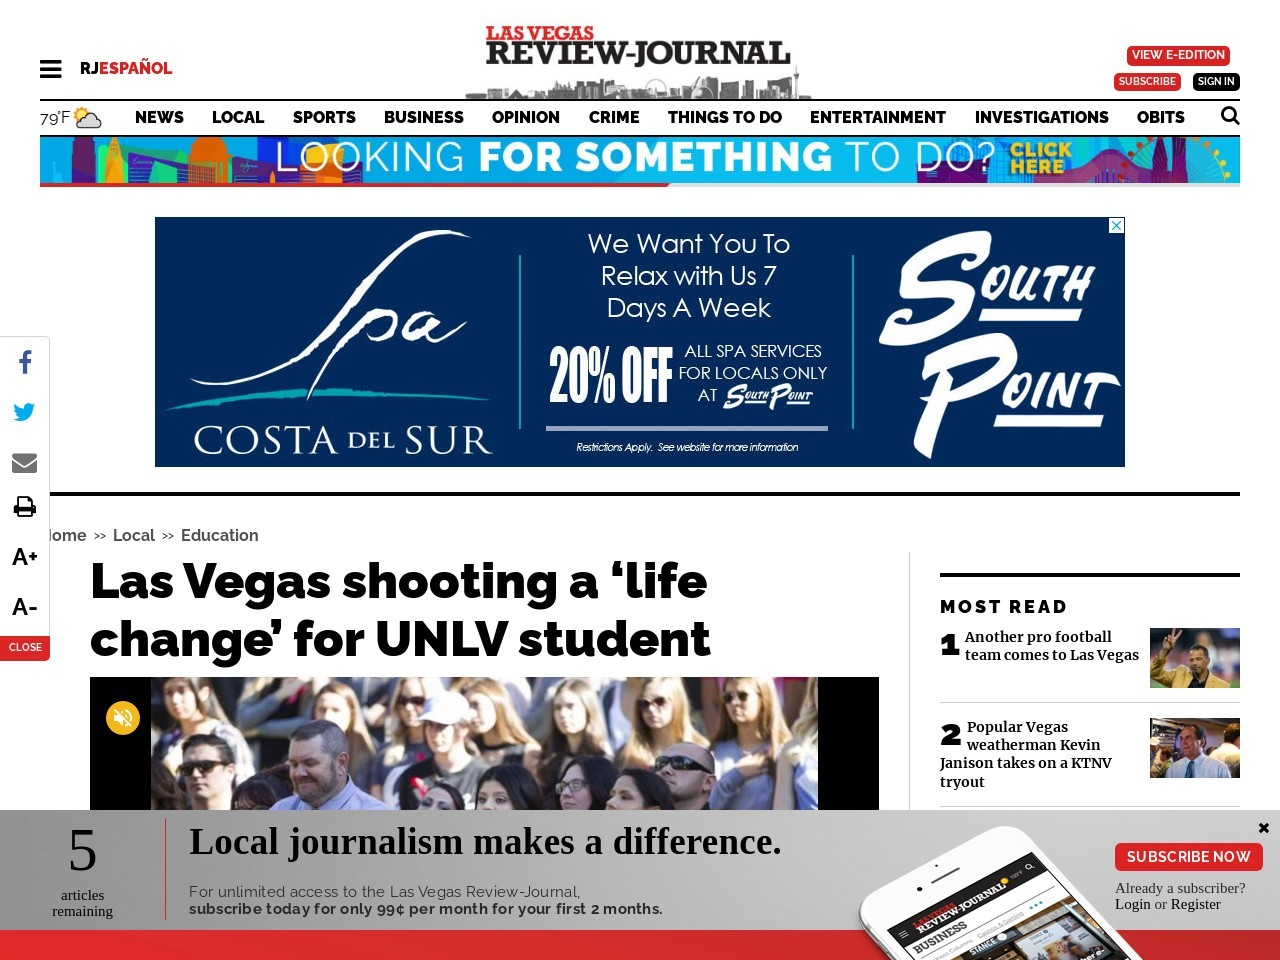 Las Vegas shooting a 'life change' for UNLV student